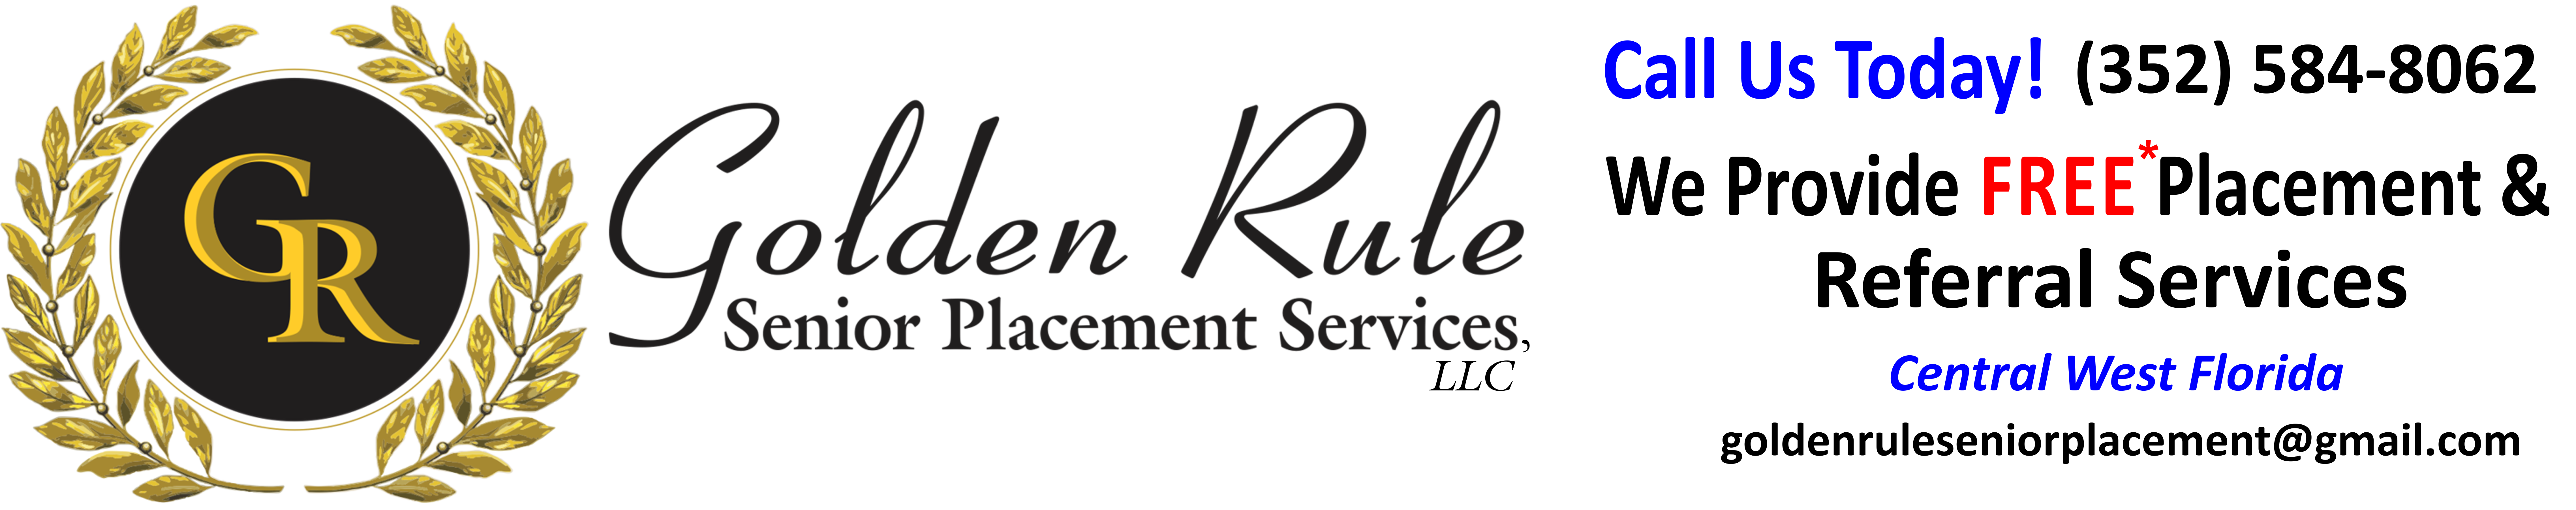 Golden Rule Senior Placement Services